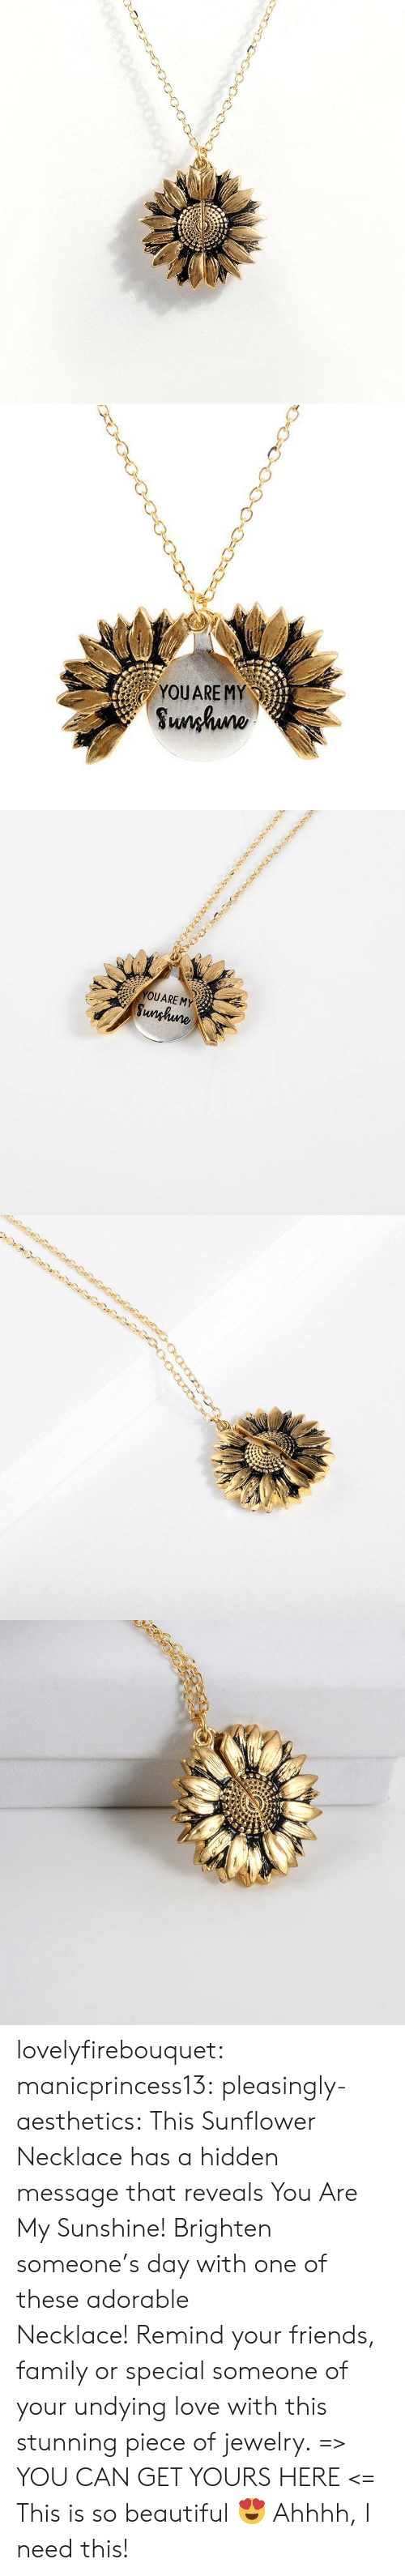 I Need This: YOUARE MY  Sunhuno   YOUARE MY  Sunghune lovelyfirebouquet:  manicprincess13: pleasingly-aesthetics:  This Sunflower Necklace has a hidden message that reveals You Are My Sunshine! Brighten someone's day with one of these adorable Necklace! Remind your friends, family or special someone of your undying love with this stunning piece of jewelry. => YOU CAN GET YOURS HERE <=   This is so beautiful 😍   Ahhhh, I need this!